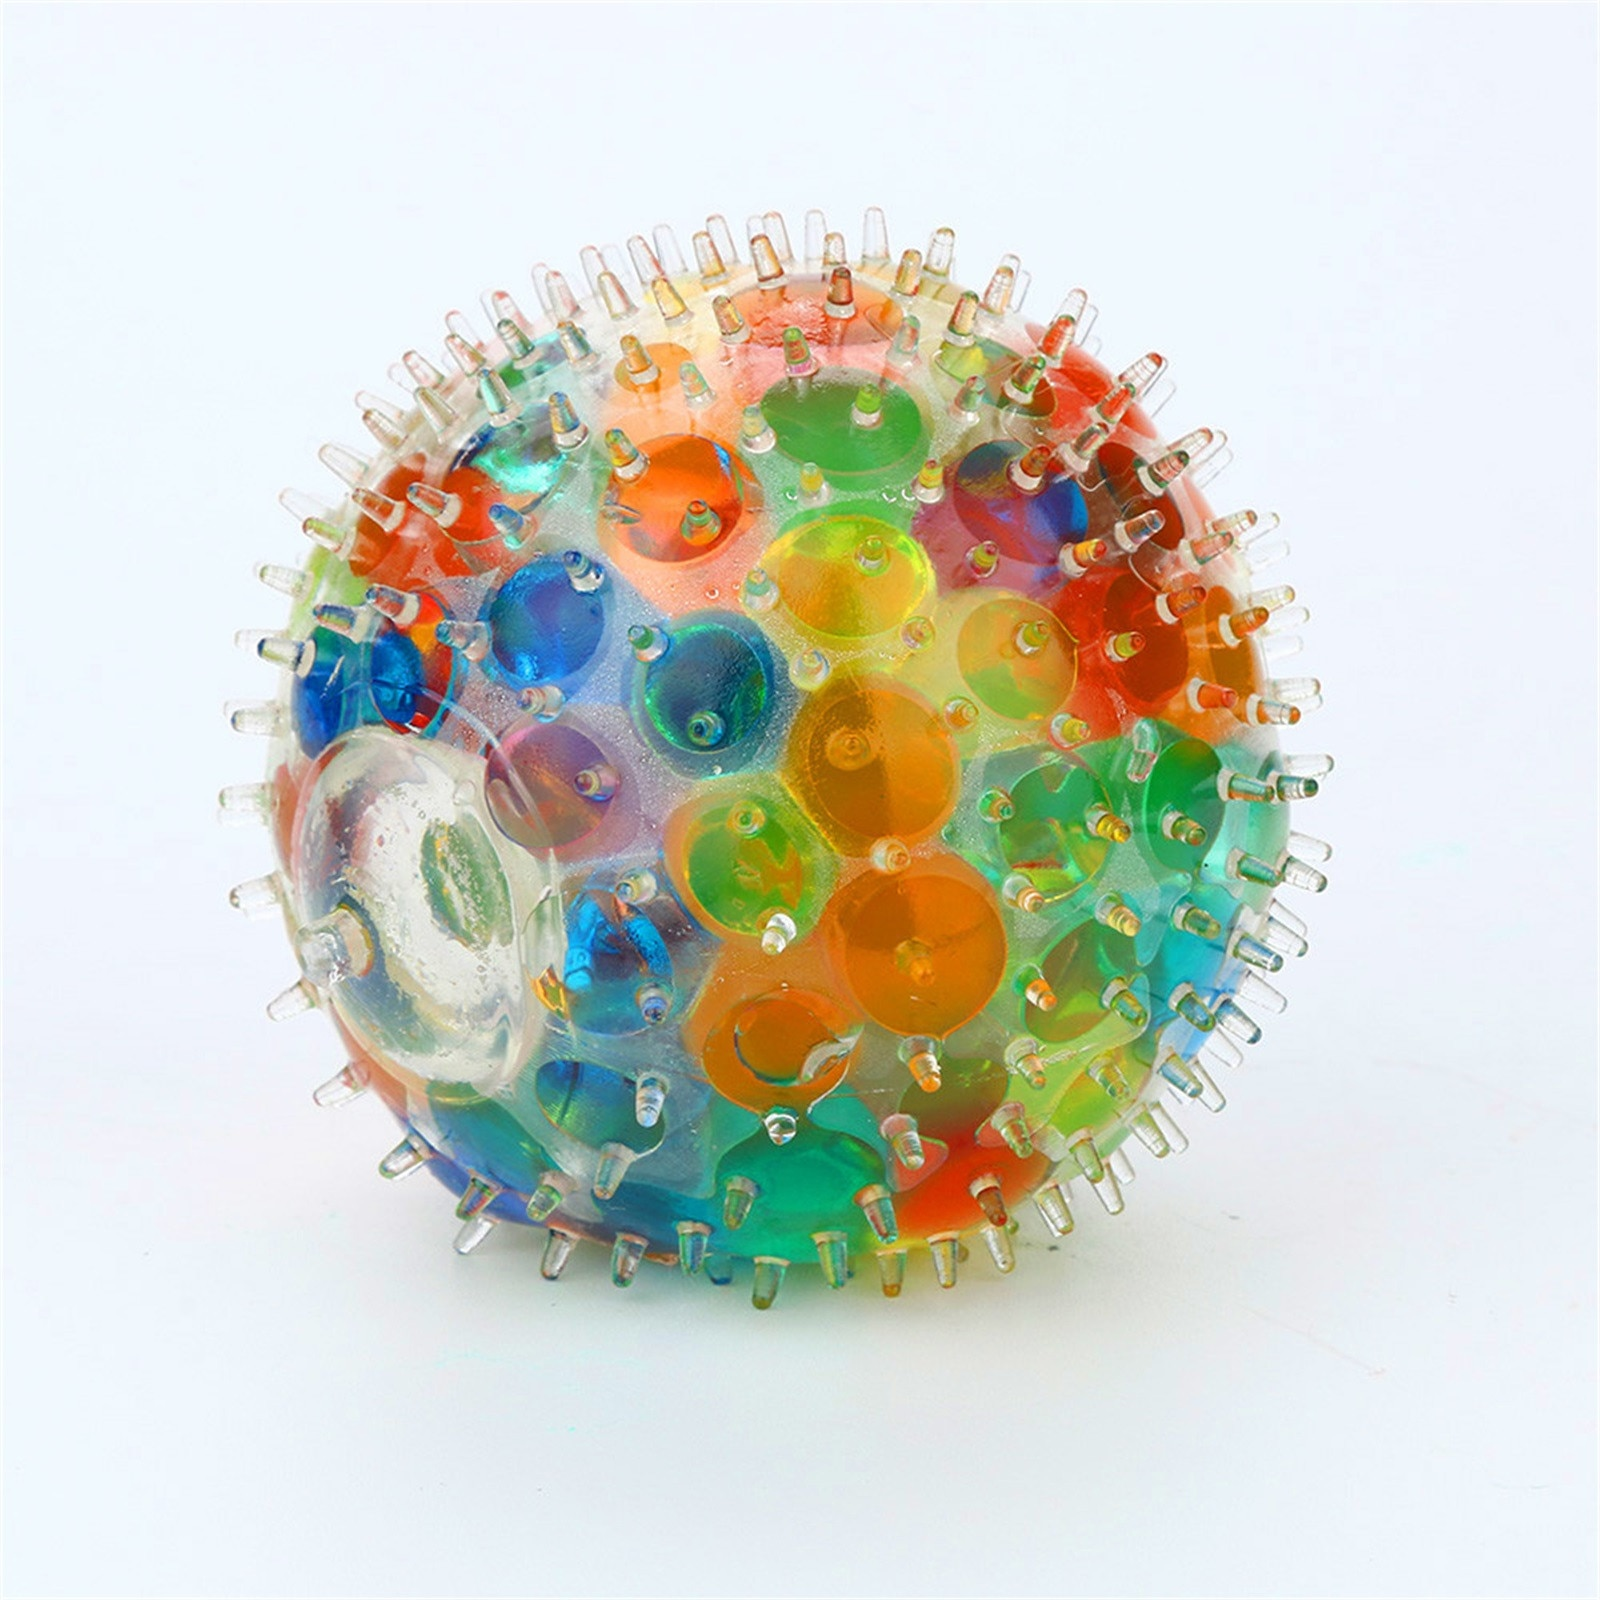 Anti-stress Toys Spongy Rainbow Ball Toy Hot Sale Spongy Bead Stress Ball Toy Squeezable Stress Squishy Toy Stress Relief Ball enlarge